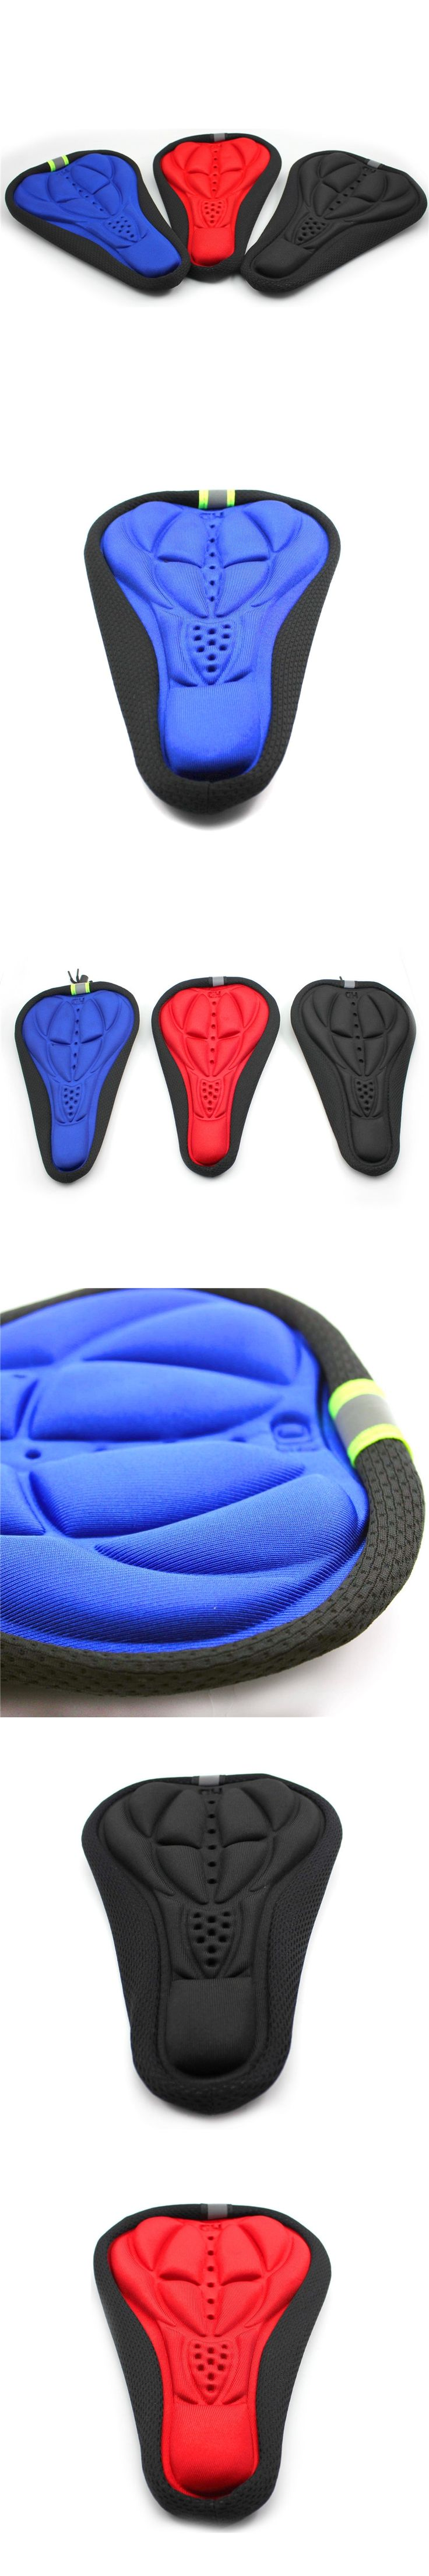 1X Cycling MTB Bike Bicycle 3D Thick Silicone Comfort Saddle Seat Cushion Cover Pad